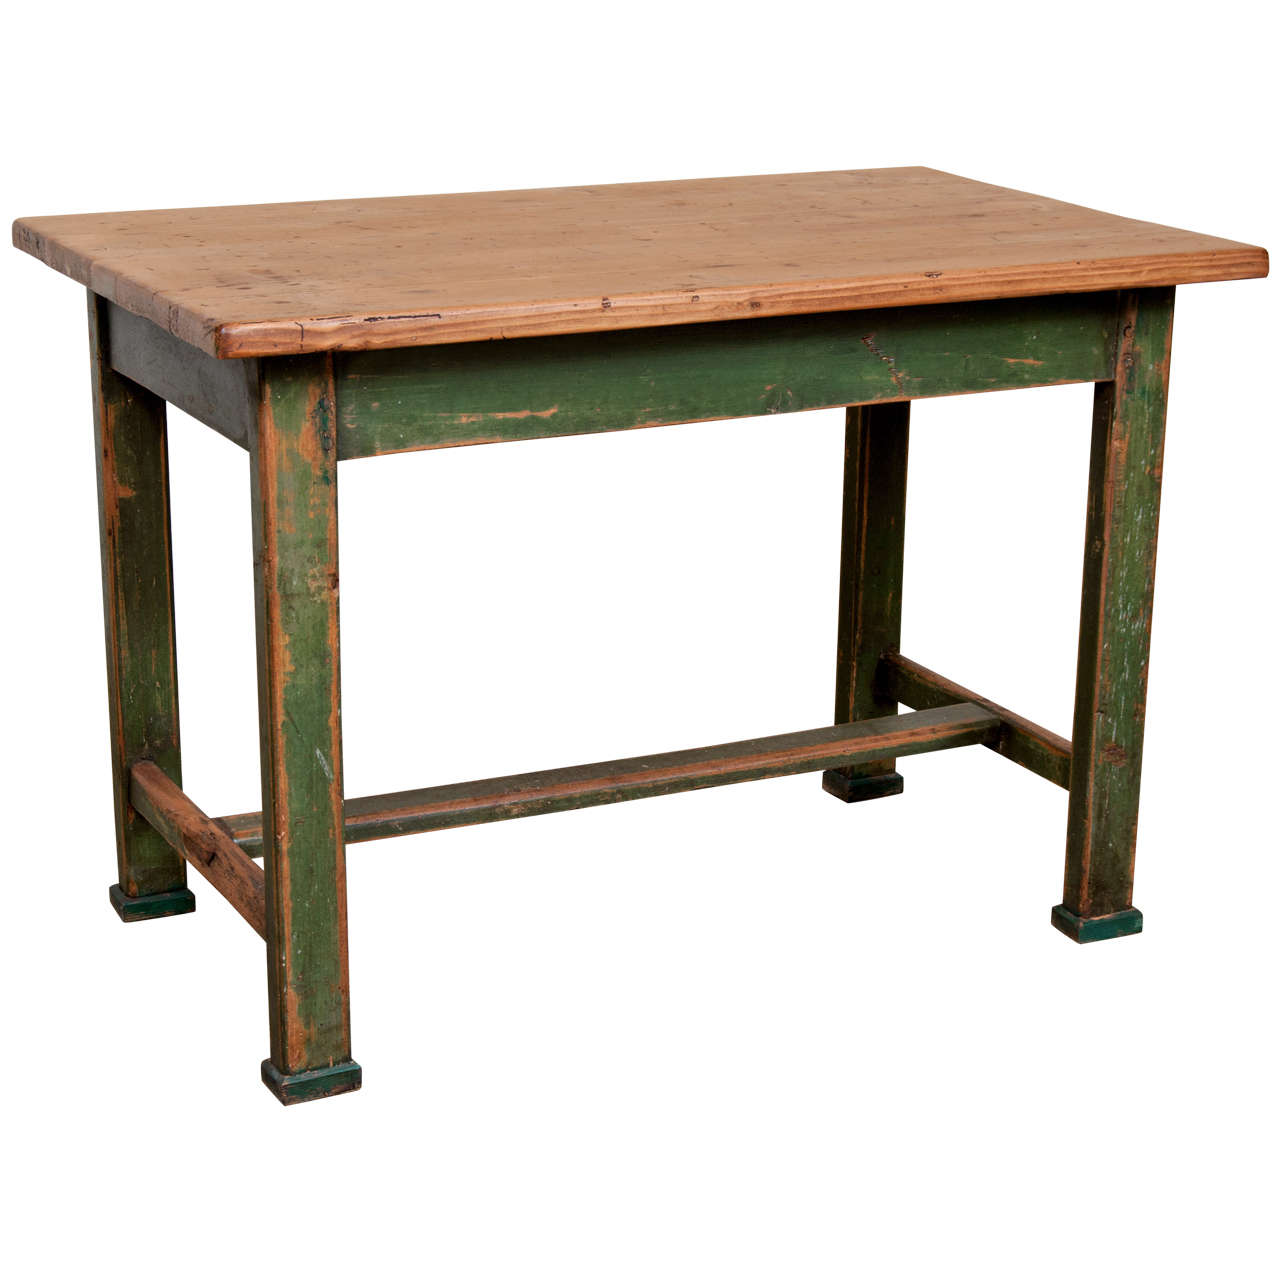 Painted Pine Table At 1stdibs